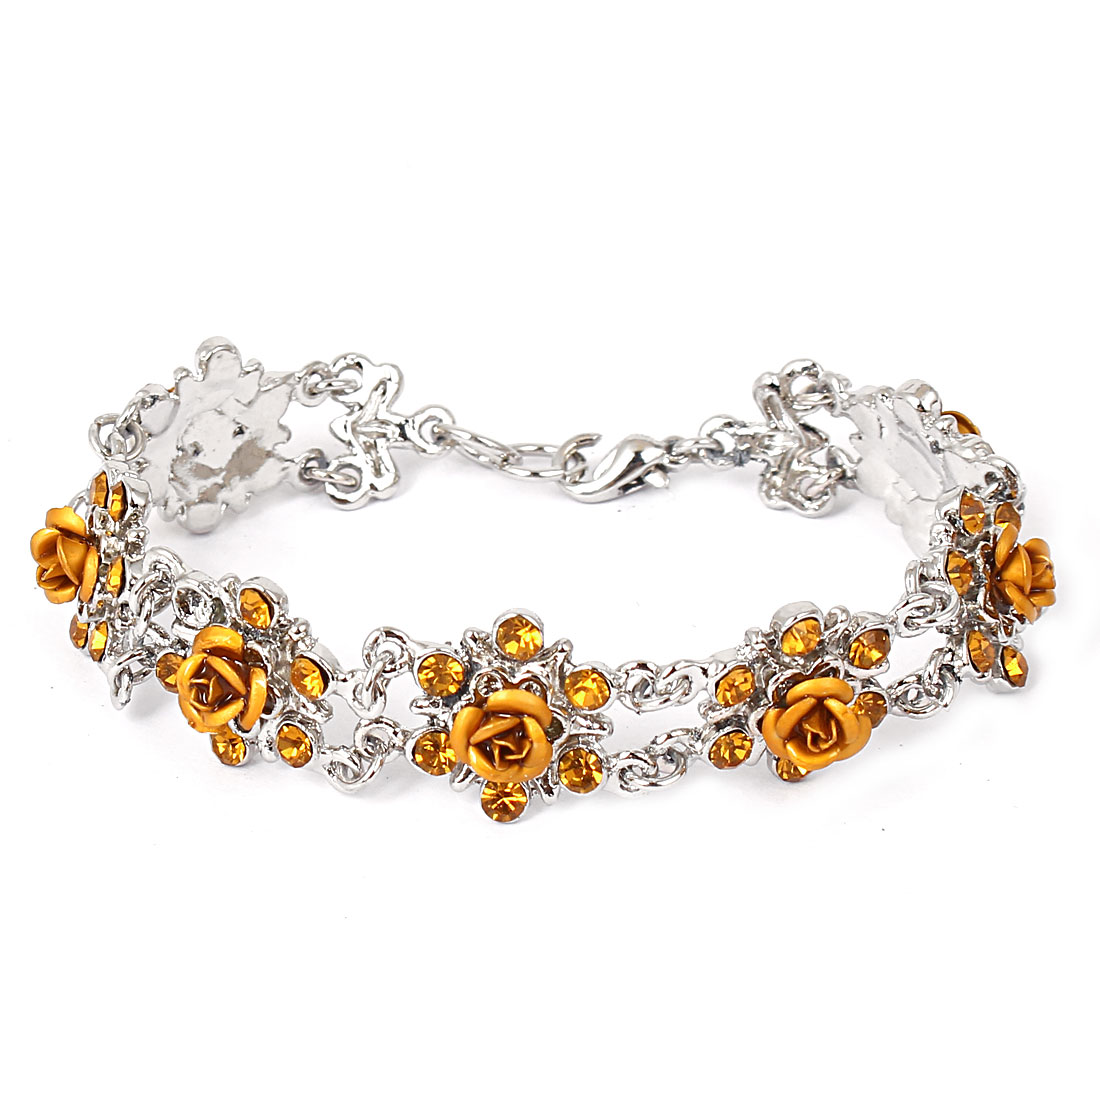 Lady Fashion Jewelry Rose Flower Crystal Decor Lobster Clasp Bracelet Gold Tone